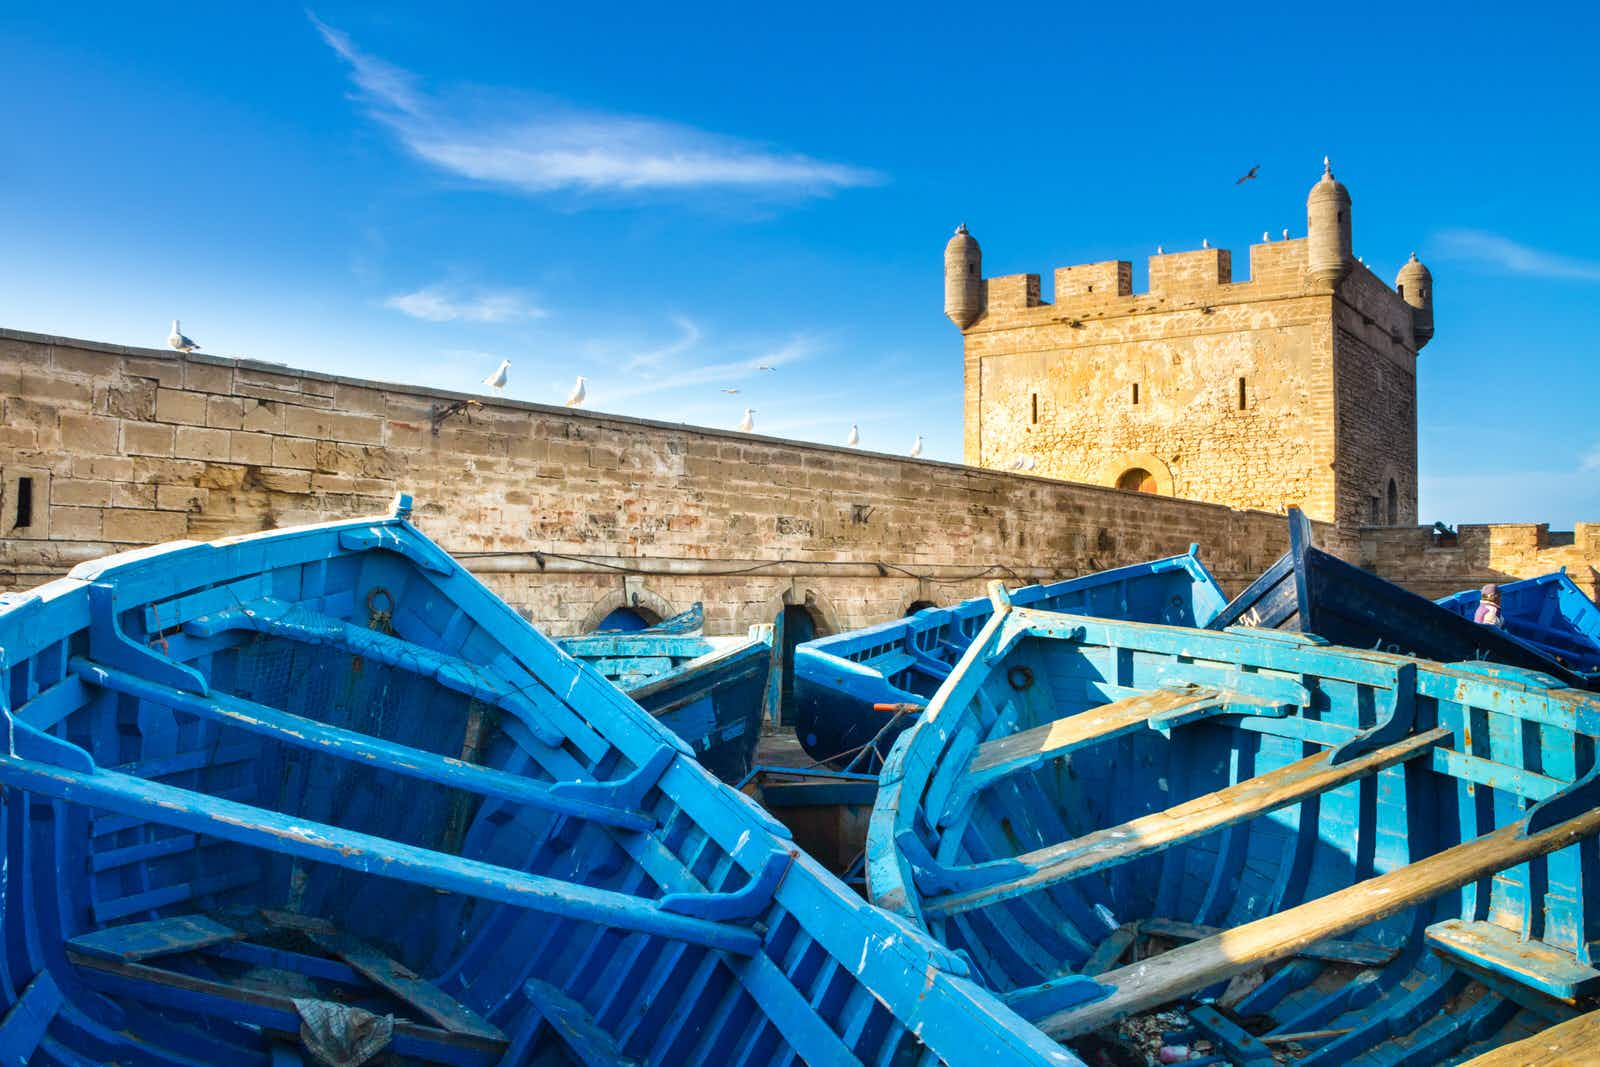 Fishermans boats in Essaouira city in the western Morocco on the Atlantic coast. It has also been known by its Portuguese name of Mogador. Morocco north Africa.